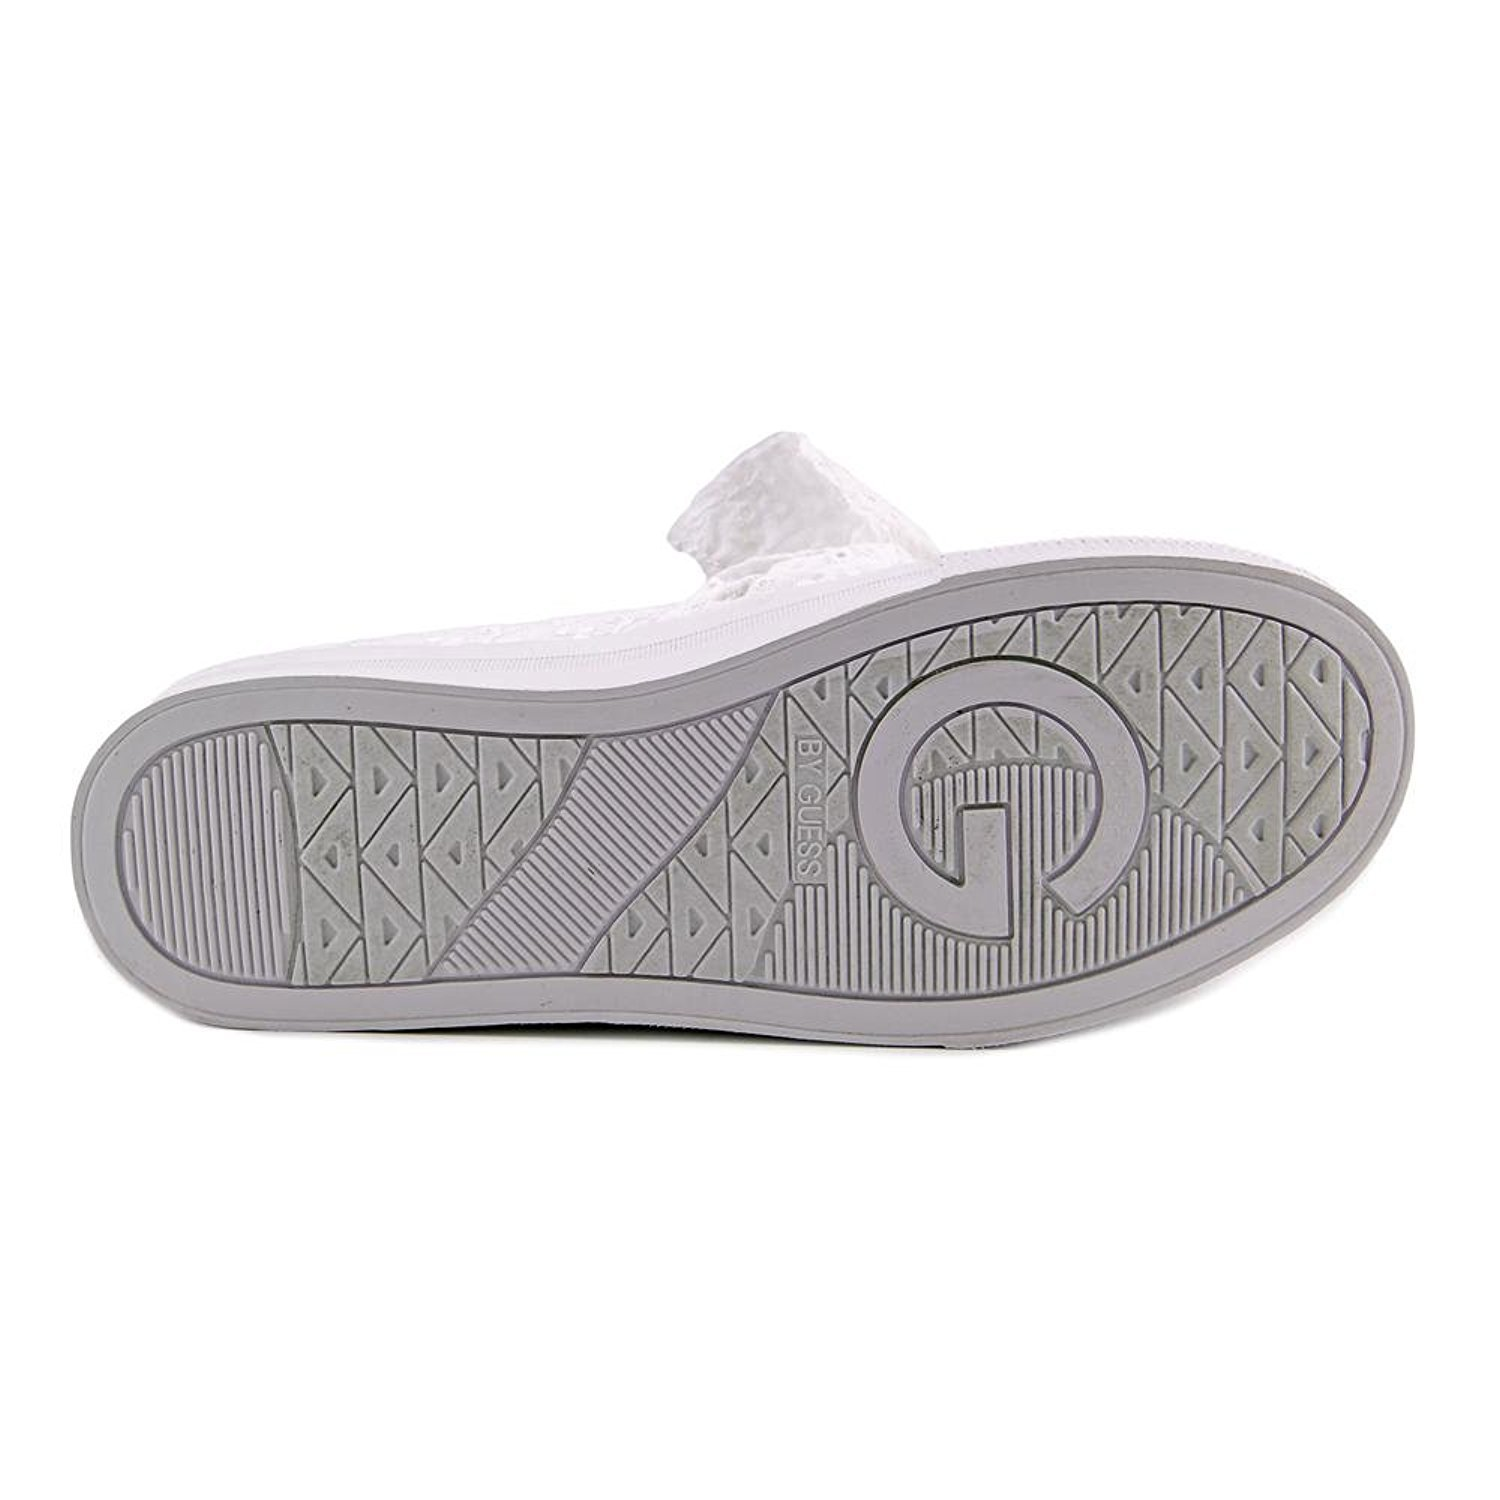 G by Guess Womens Chippy Fabric Low Top Slip On Fashion Sneakers